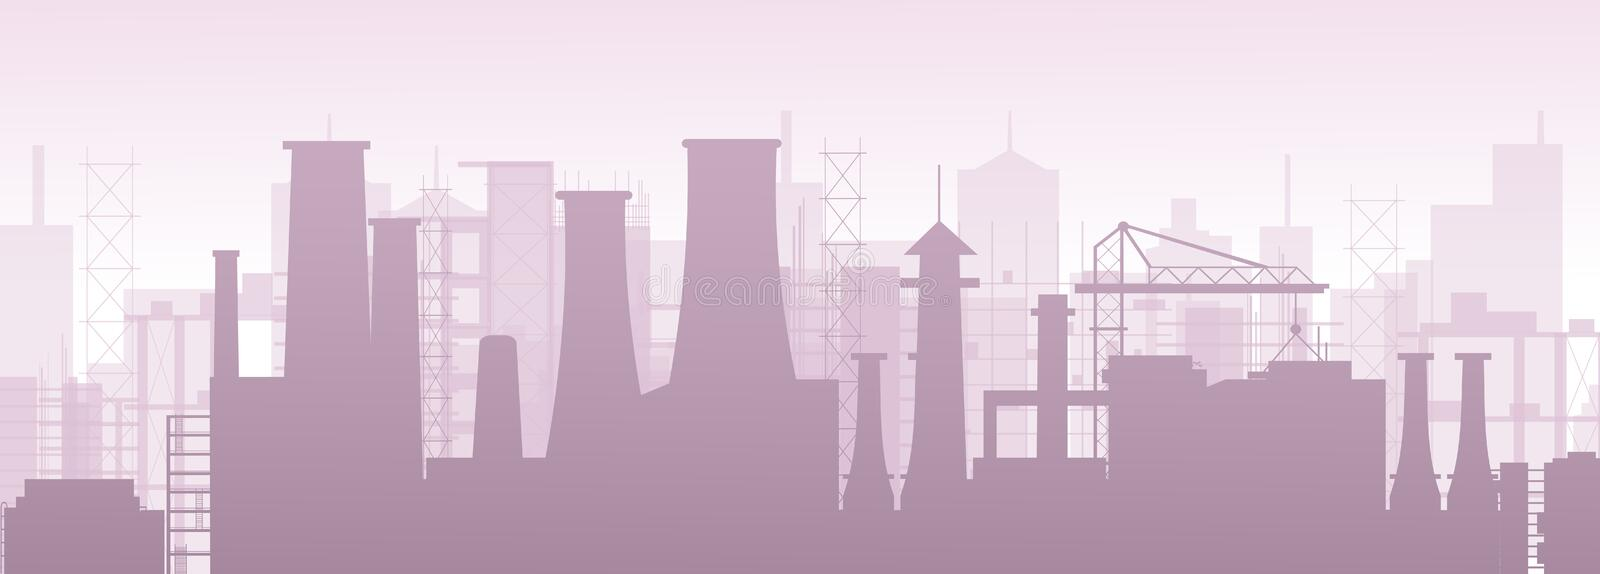 Vector illustration of industrial chemical petrochemical oil and gas refinery plant. Factory pollution landscape. royalty free illustration